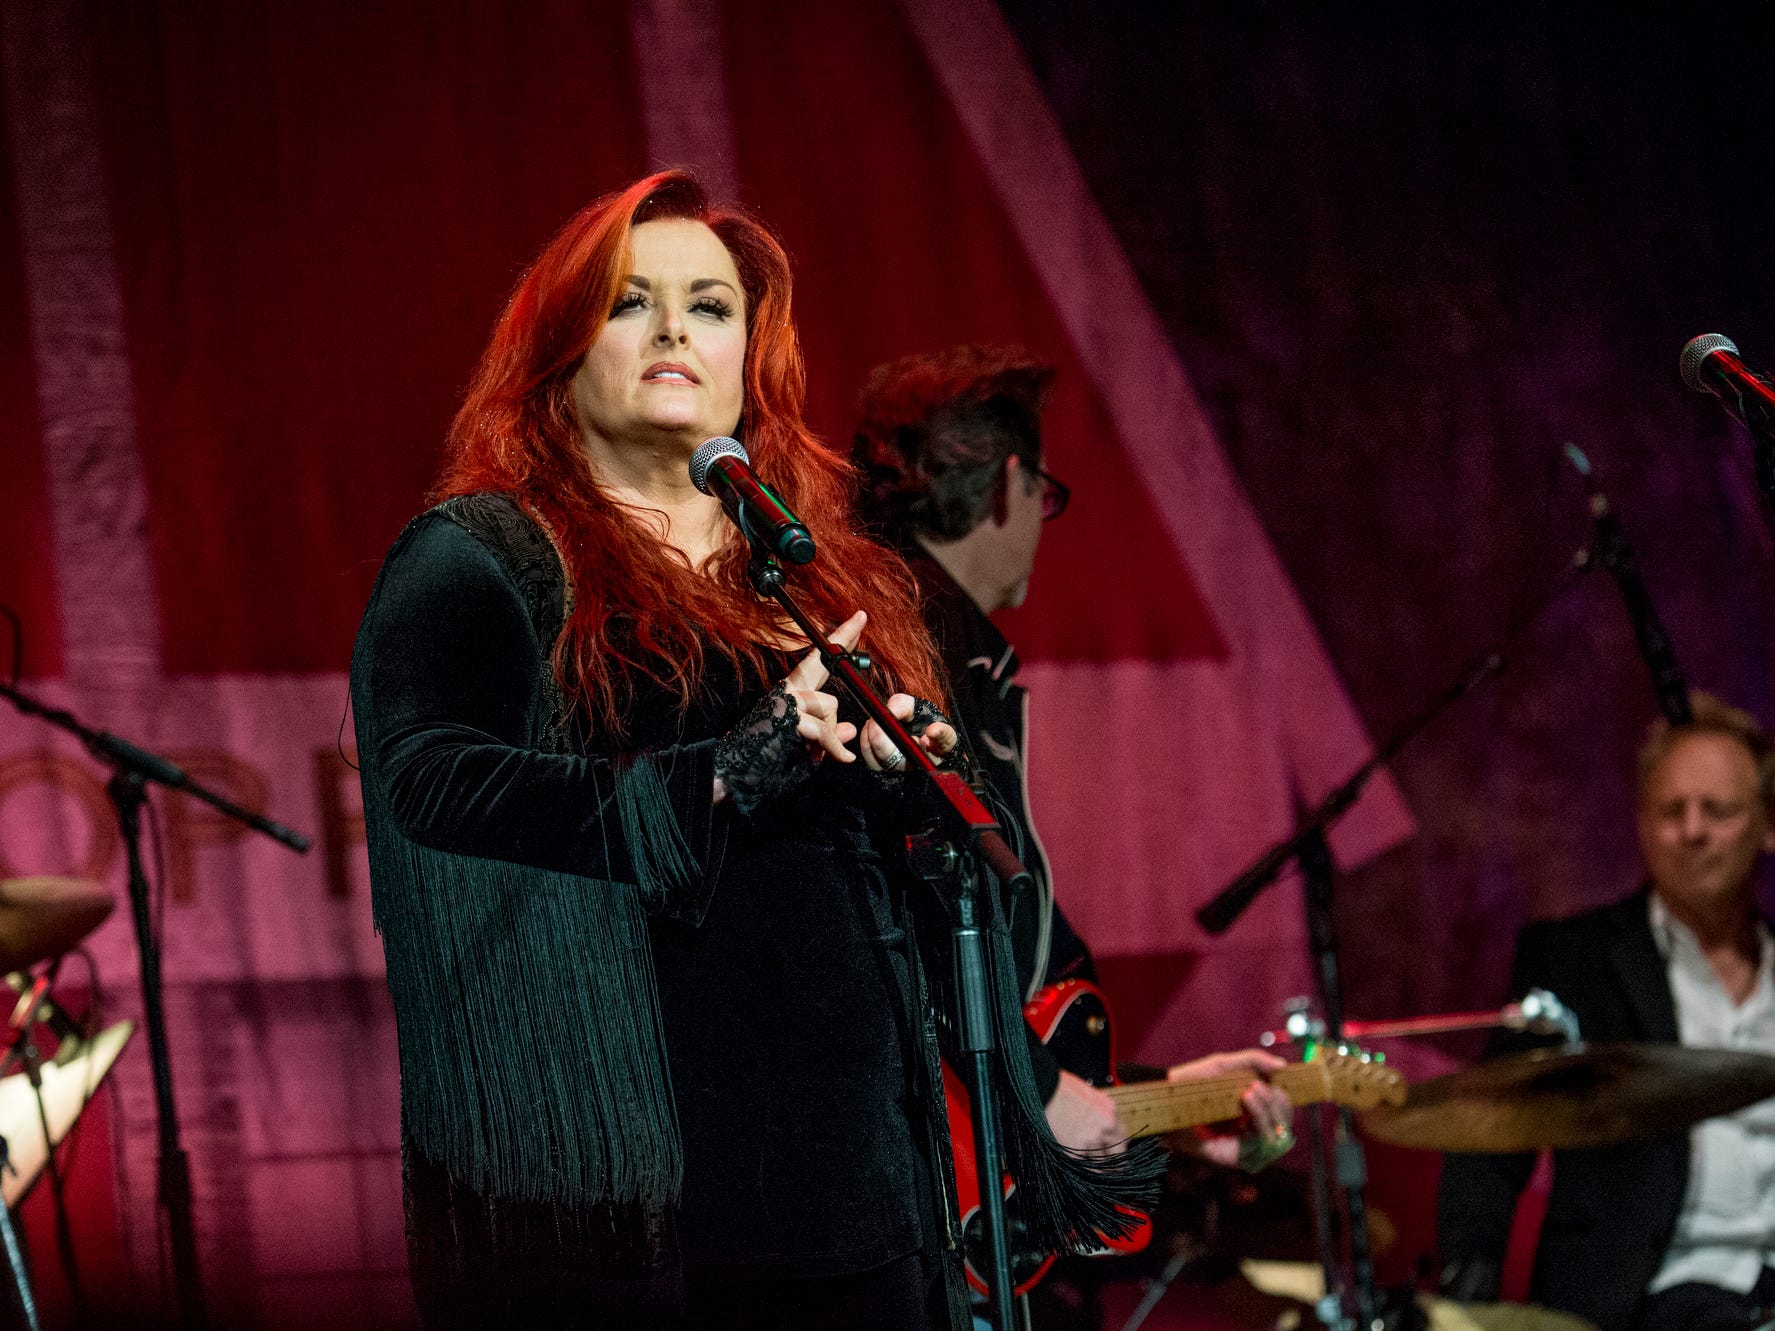 April 26 GRAND OLE OPRY WITH WYNONNA: 7 p.m. Grand Ole Opry House, $40-$110, opry.com